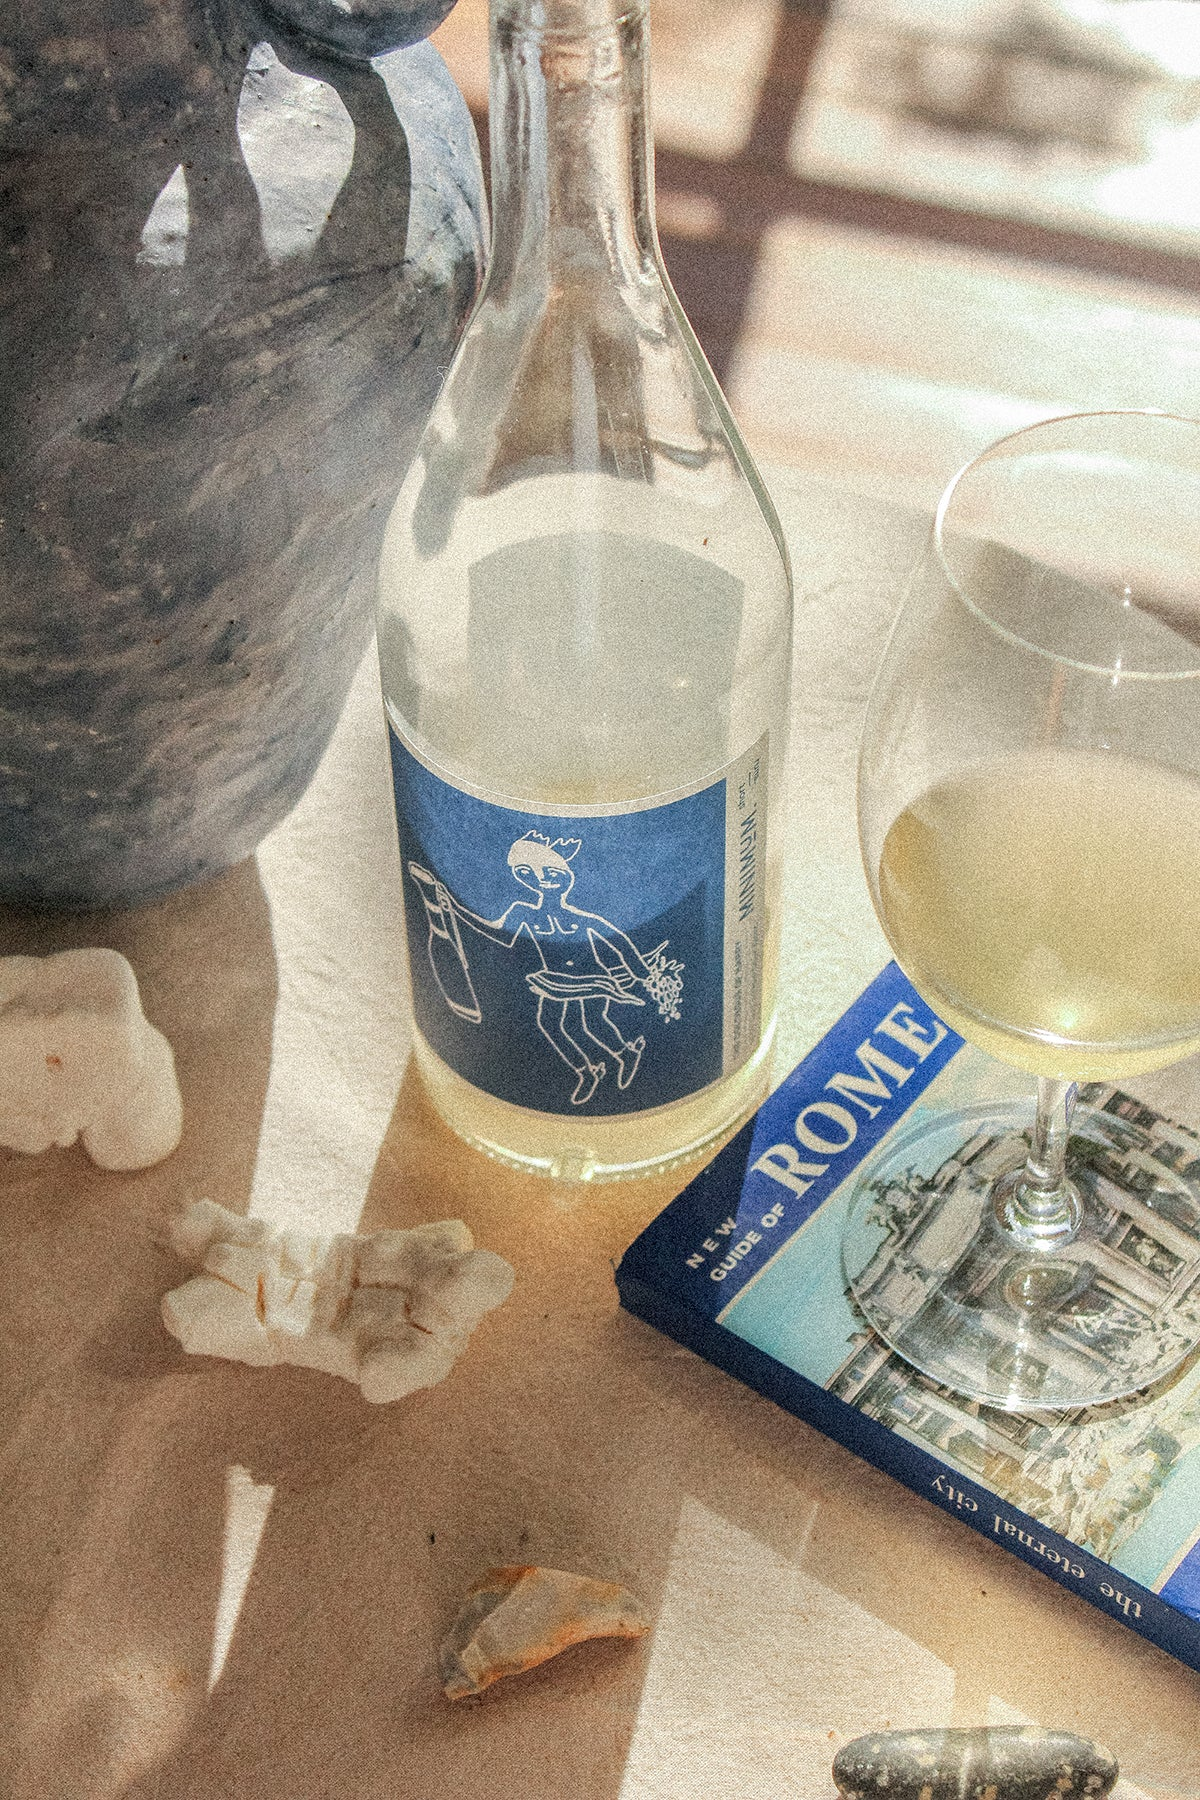 Short Runs → 2020 'The Colossus of Harry' Skin-contact Sauv. Blanc.